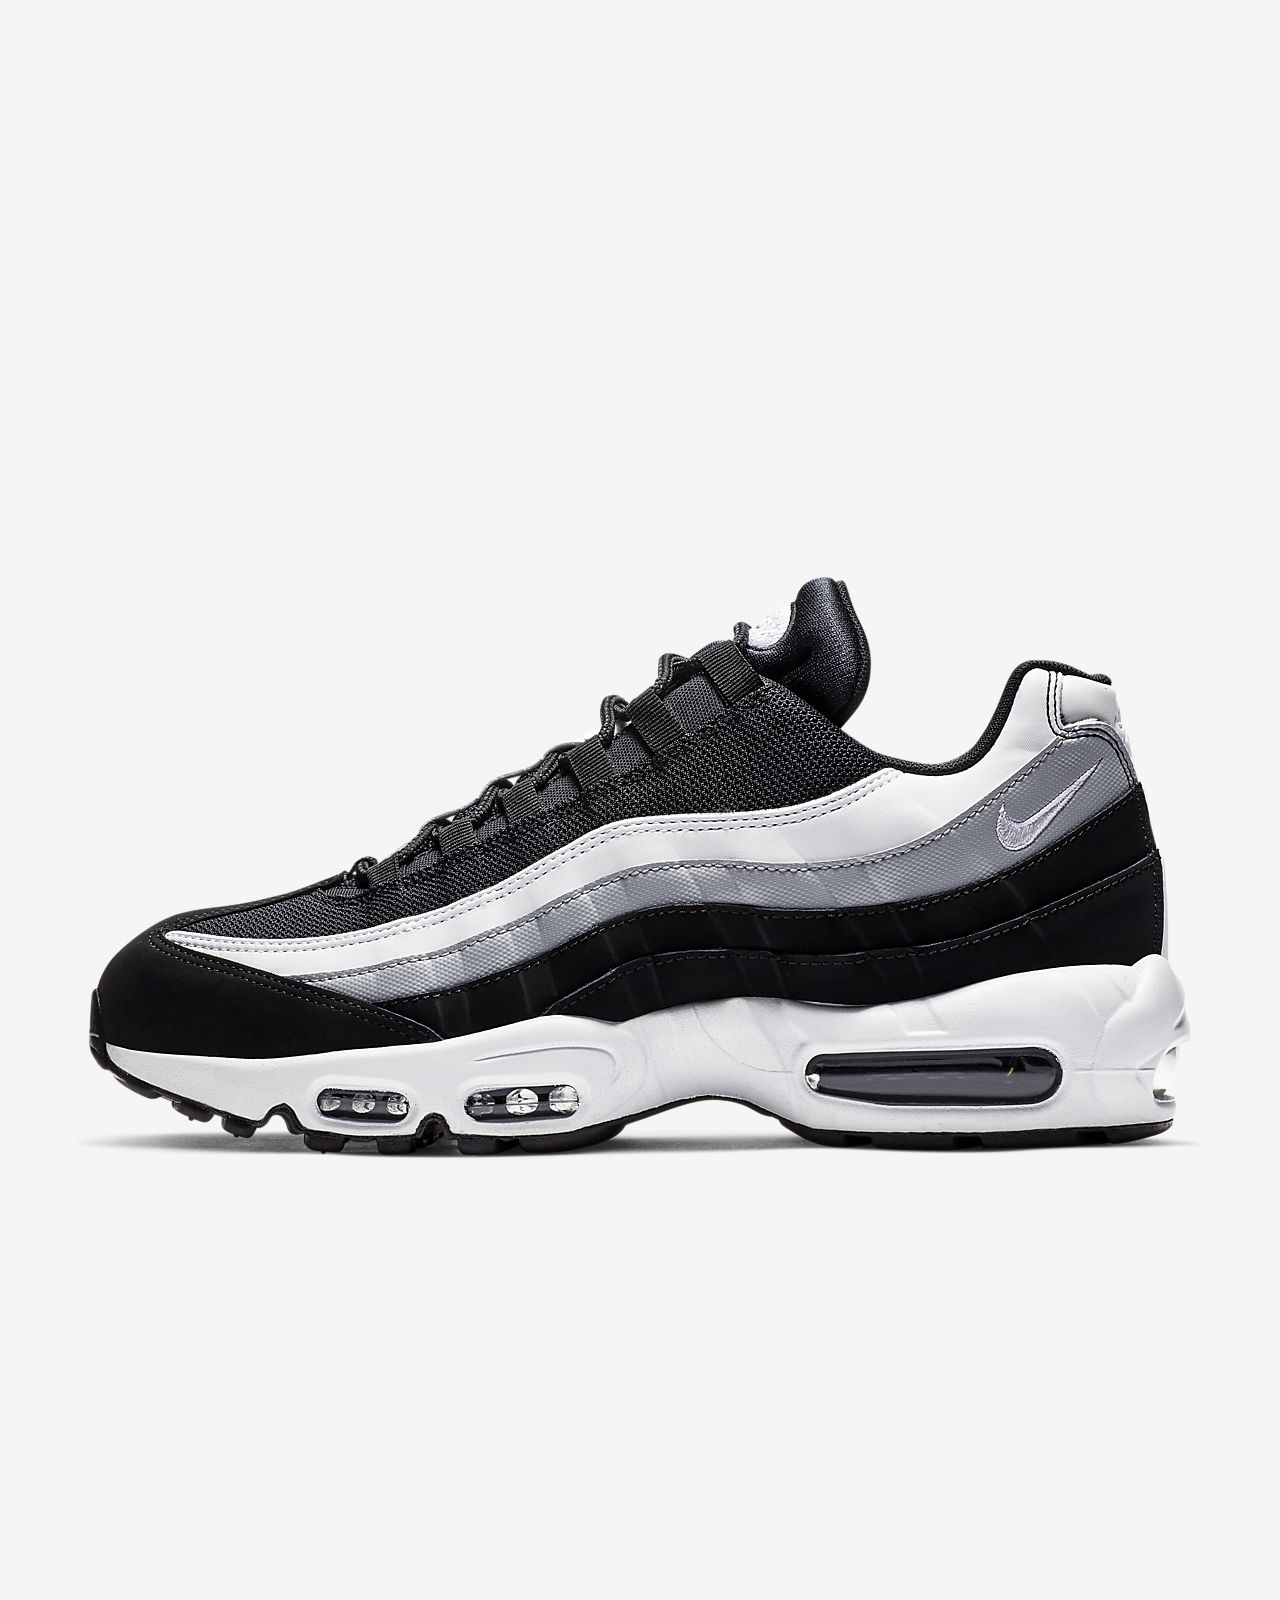 check out 5a8d8 75e3e Nike Air Max 95 Essential Men's Shoe. Nike.com SG